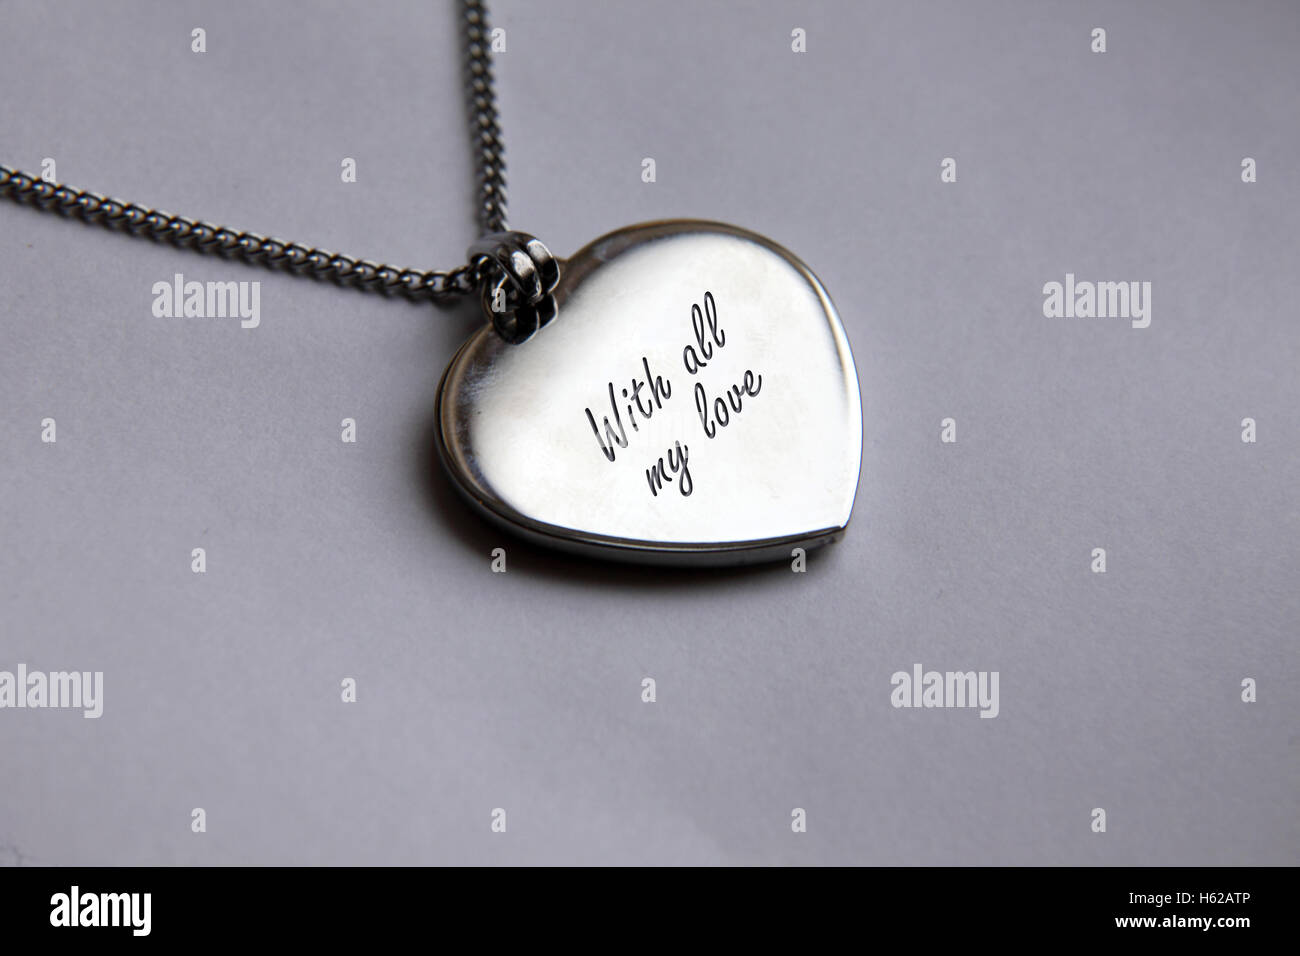 Silver pendant necklace on a small chain engraved 'With all my love' - Stock Image